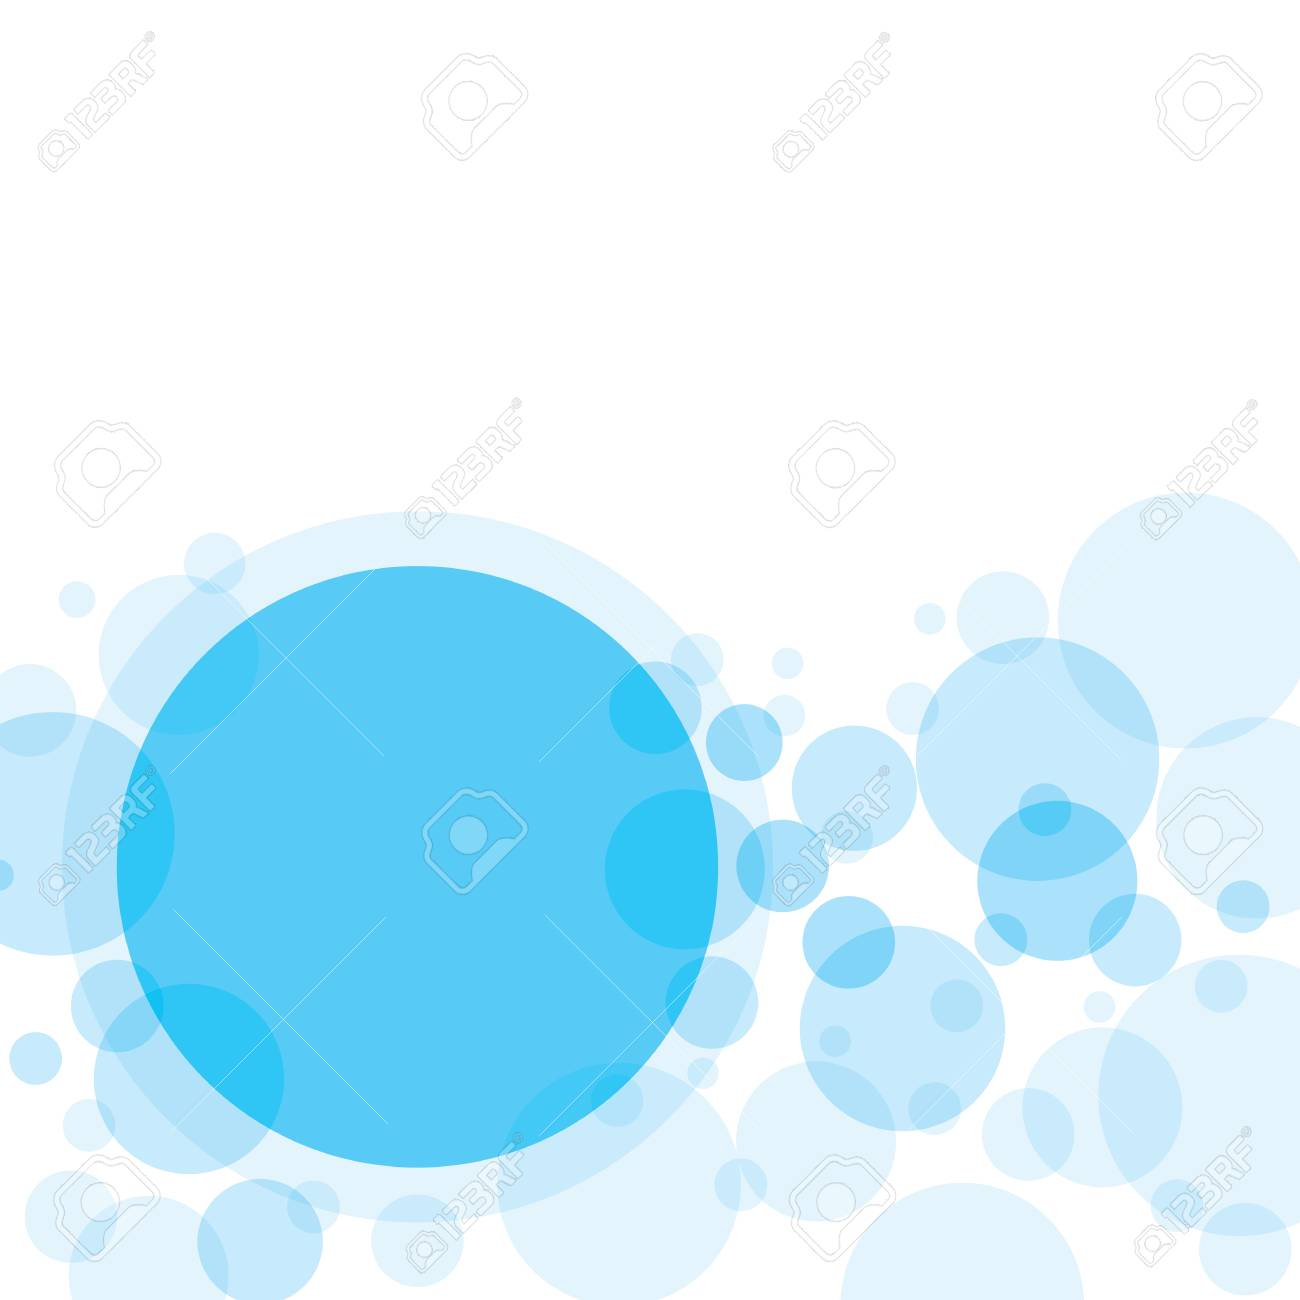 transparent crossing circles abstract background sky blue bubbles rh 123rf com vector skydiving vector skyline rotterdam